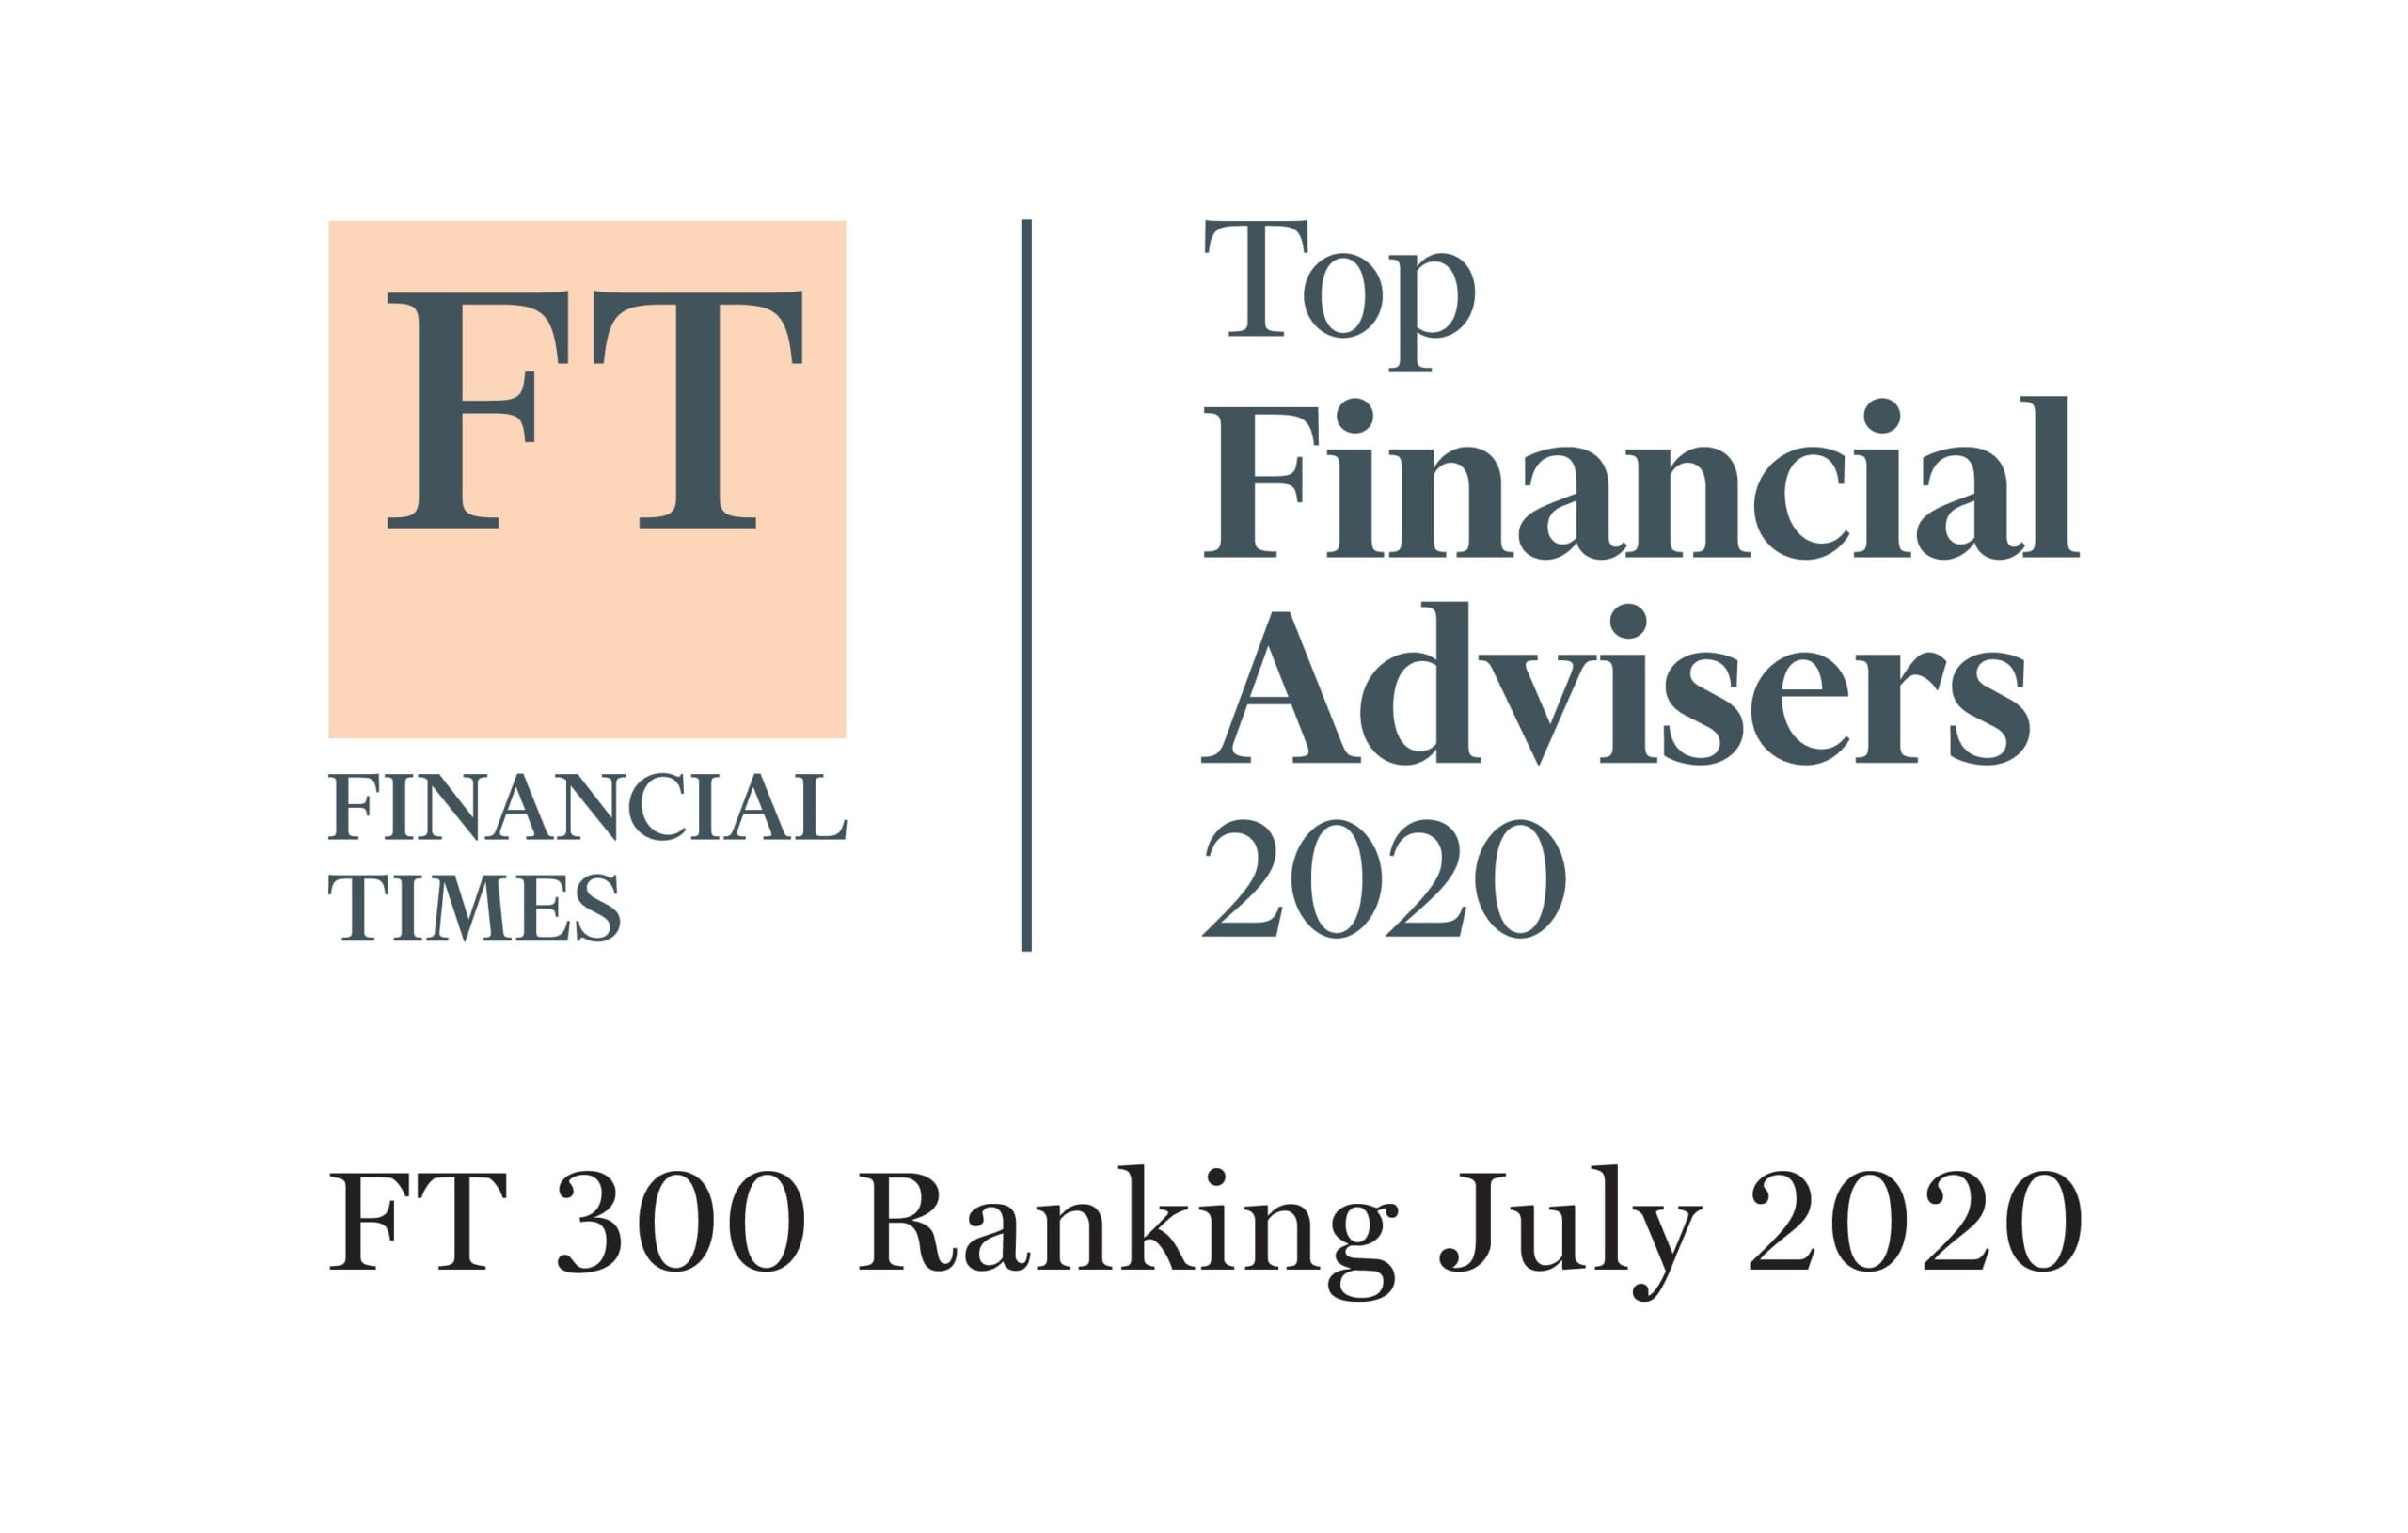 FT 300 Top Financial Advisers image